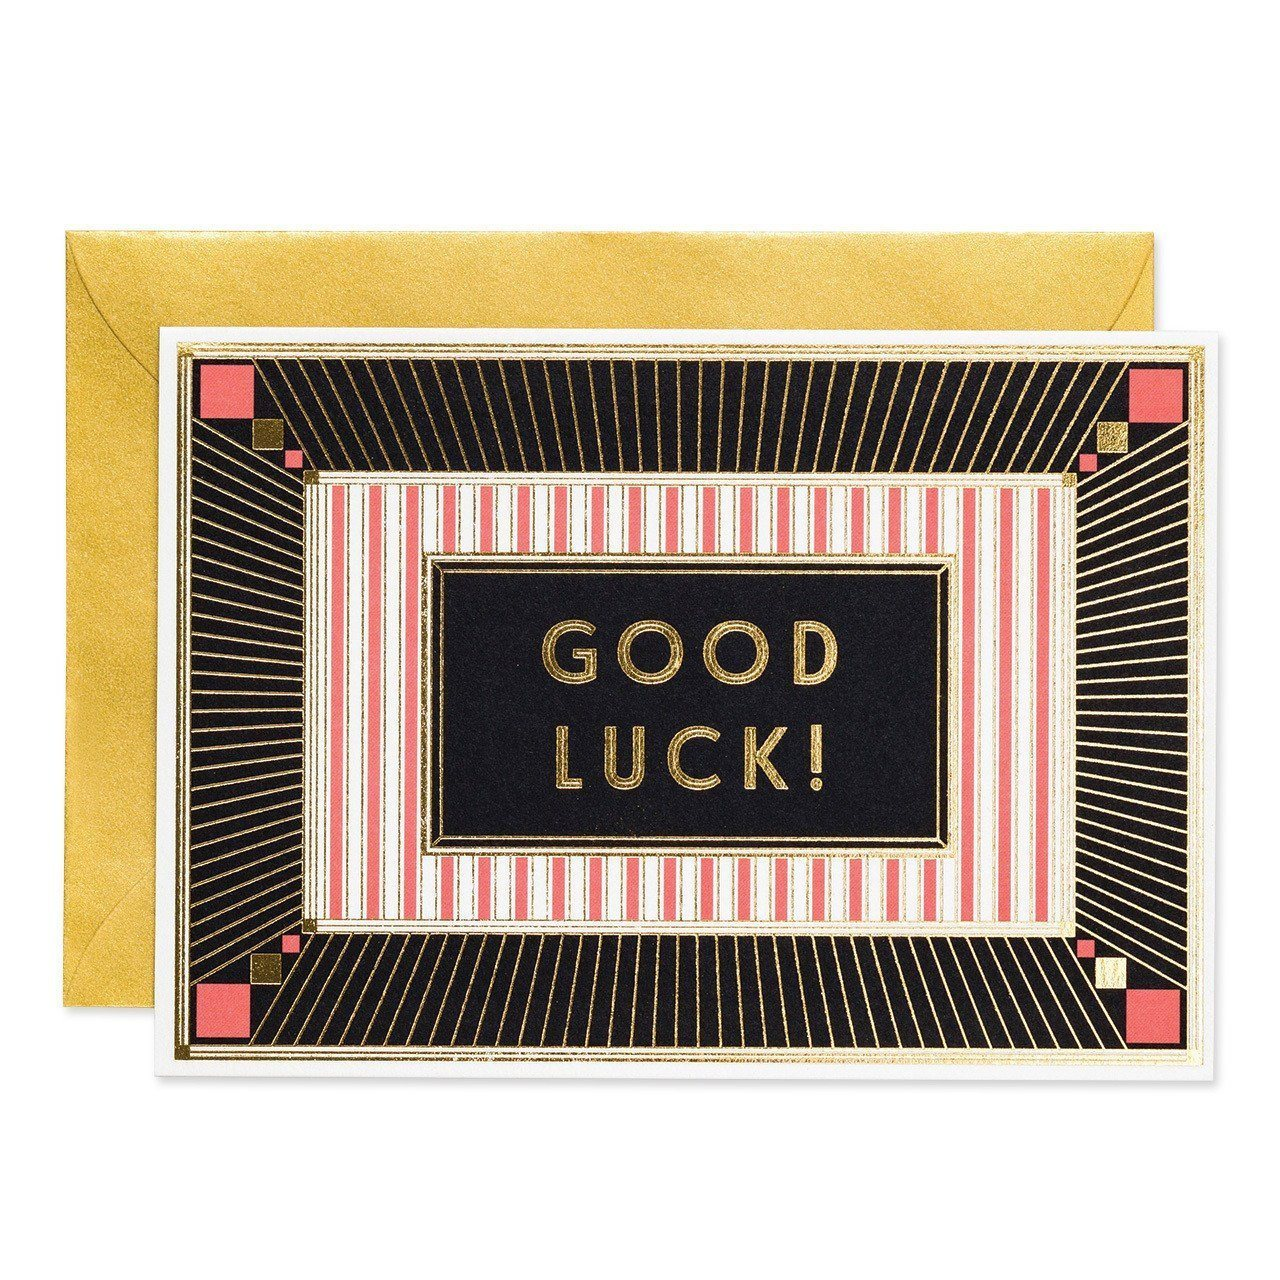 Good luck - Art Deco greeting card - Chase and Wonder - Proudly Made in Britain